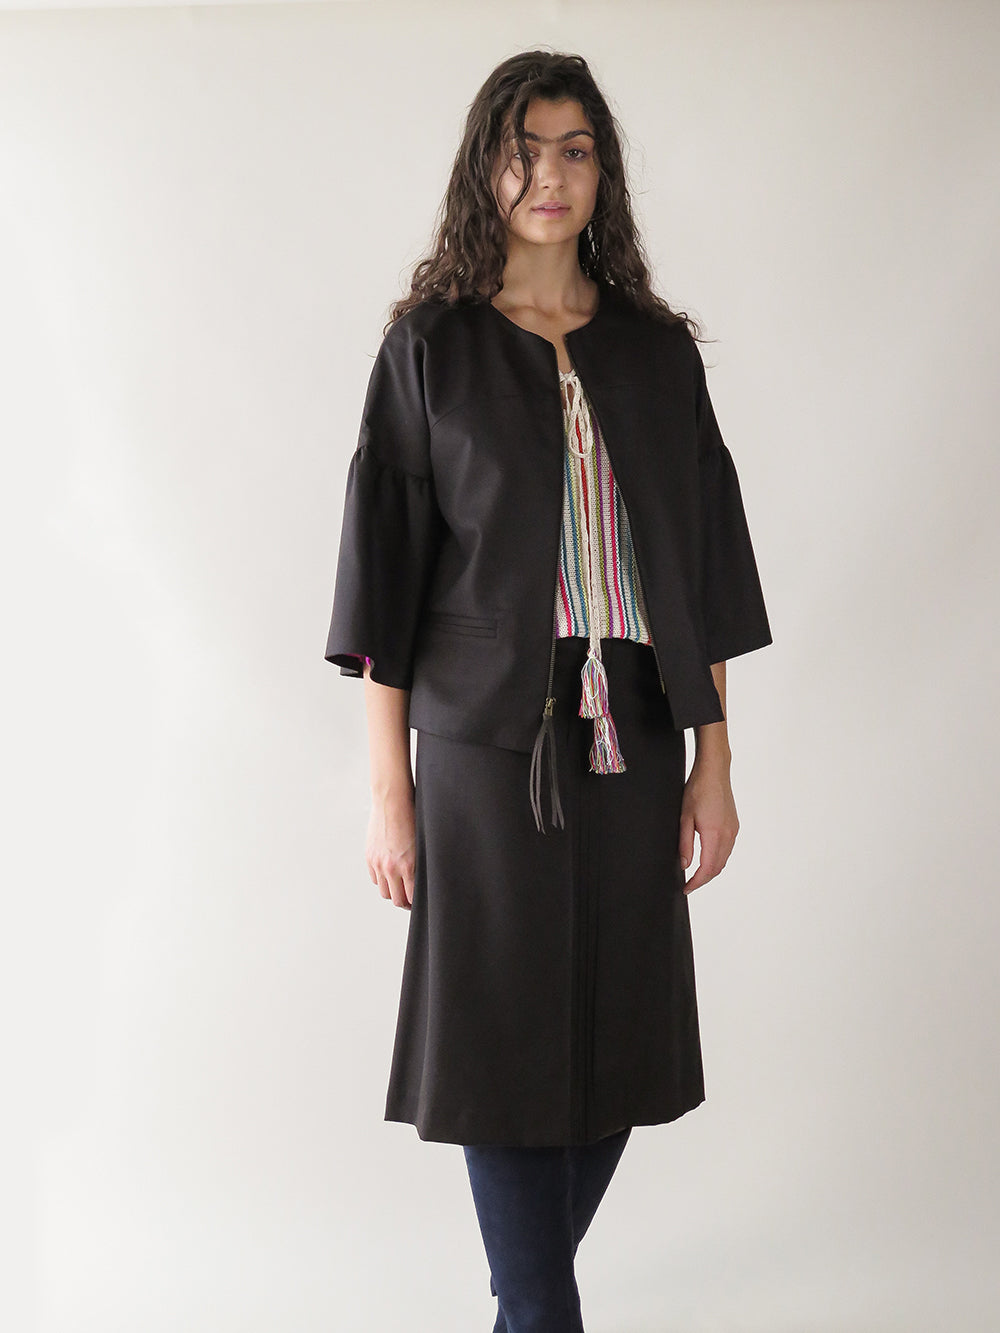 emile skirt in paen black